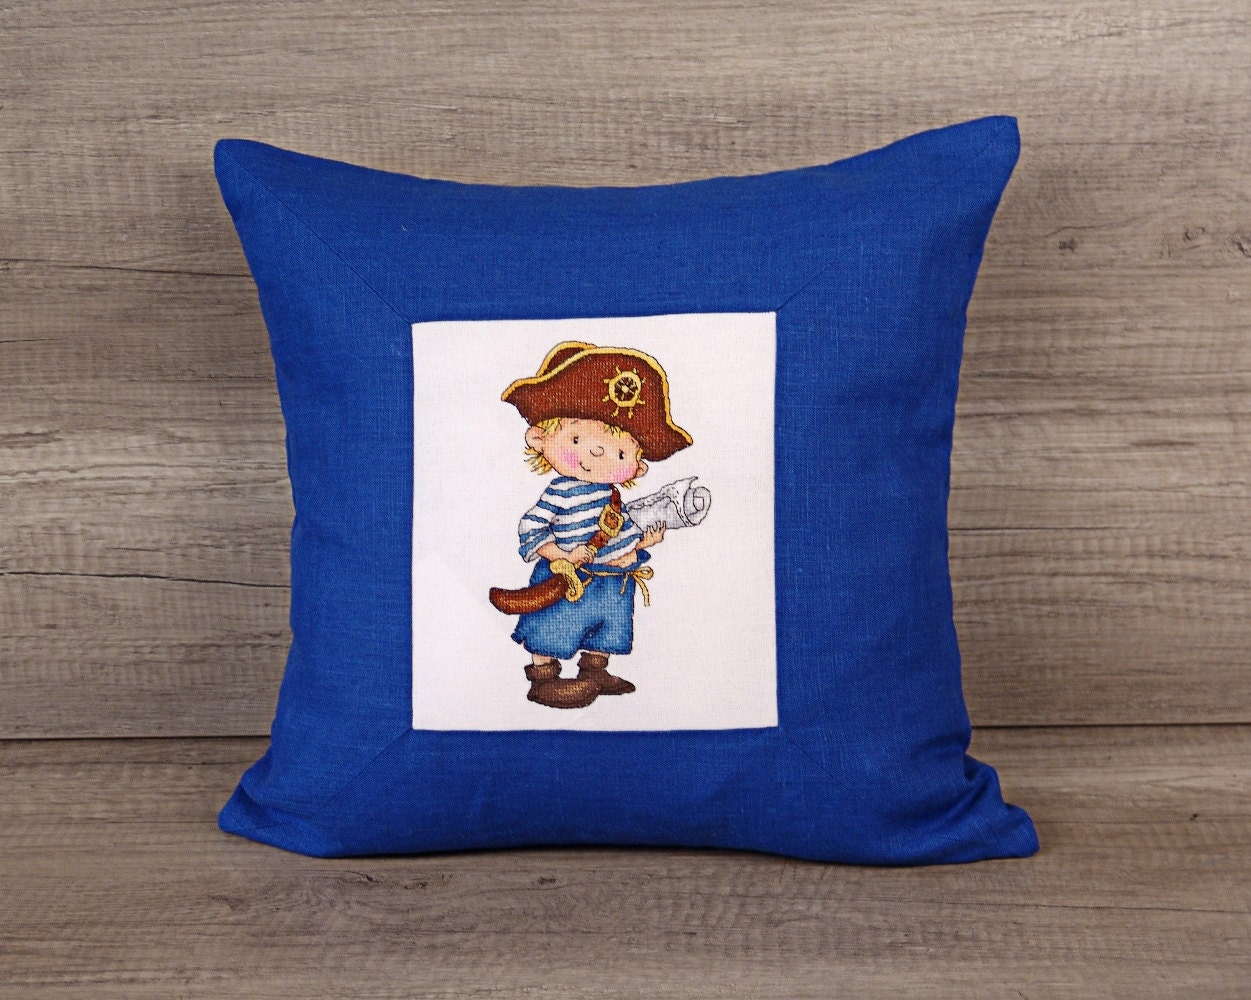 Cute Navy Pillow : Cute navy blue cross-stitch decorative pillow kids pirate